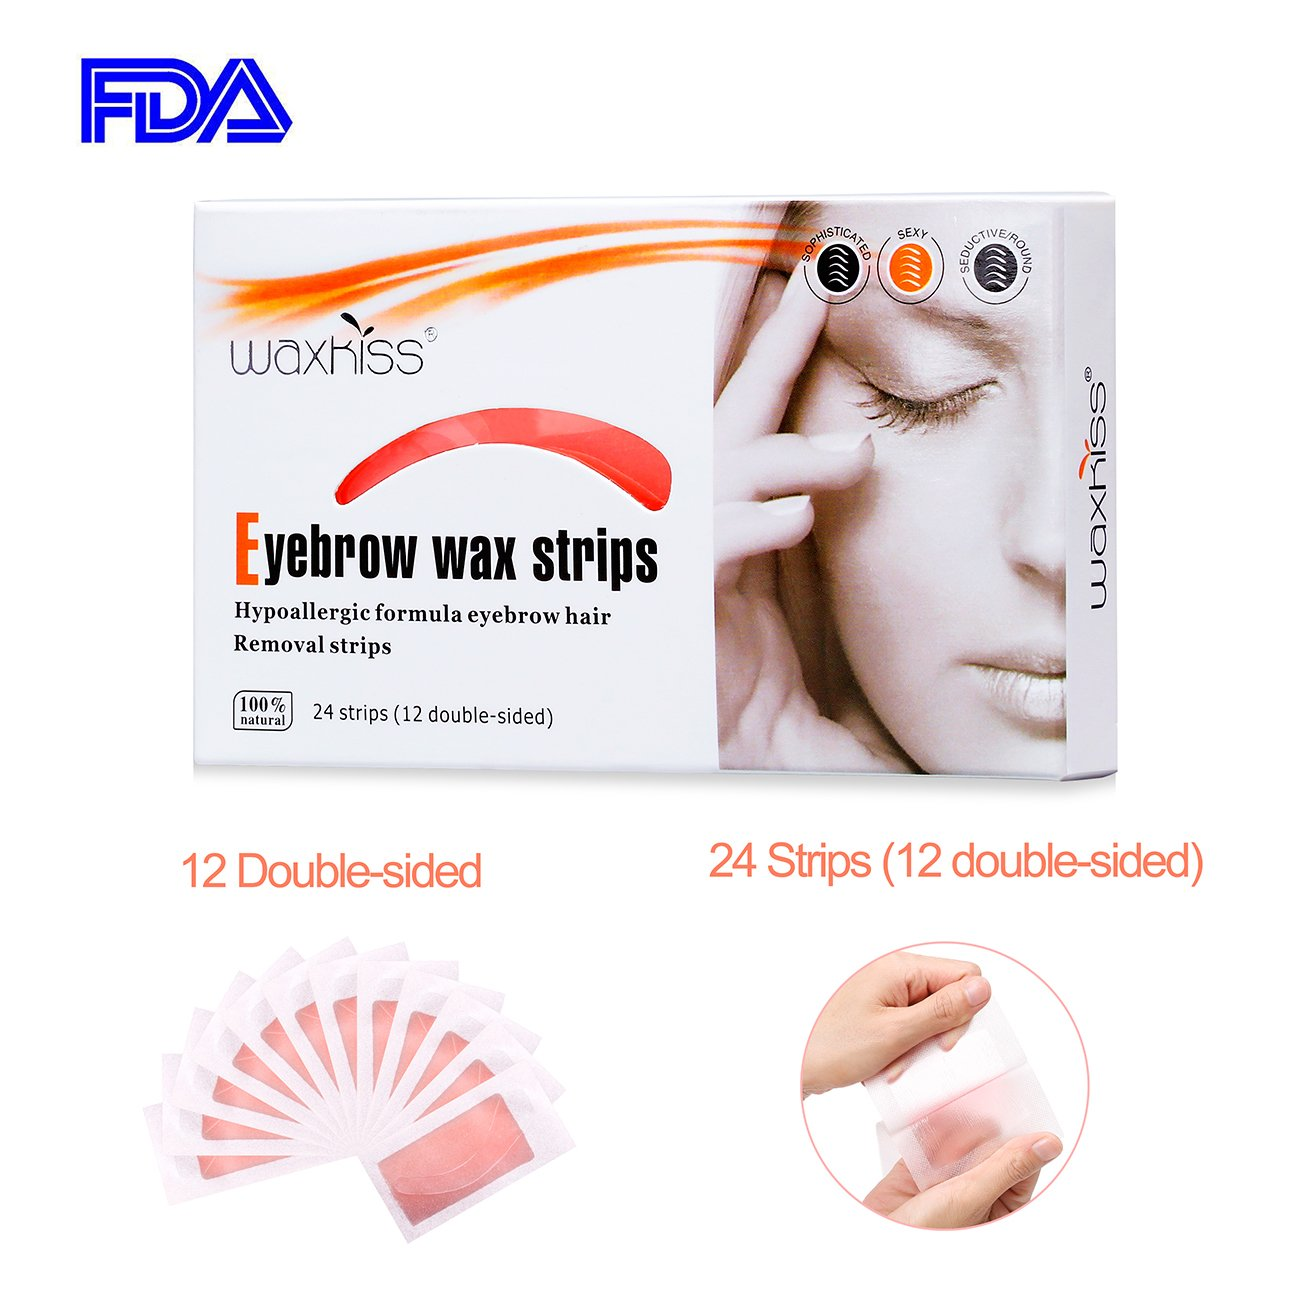 Cheap Wax Strips For Eyebrows Find Wax Strips For Eyebrows Deals On